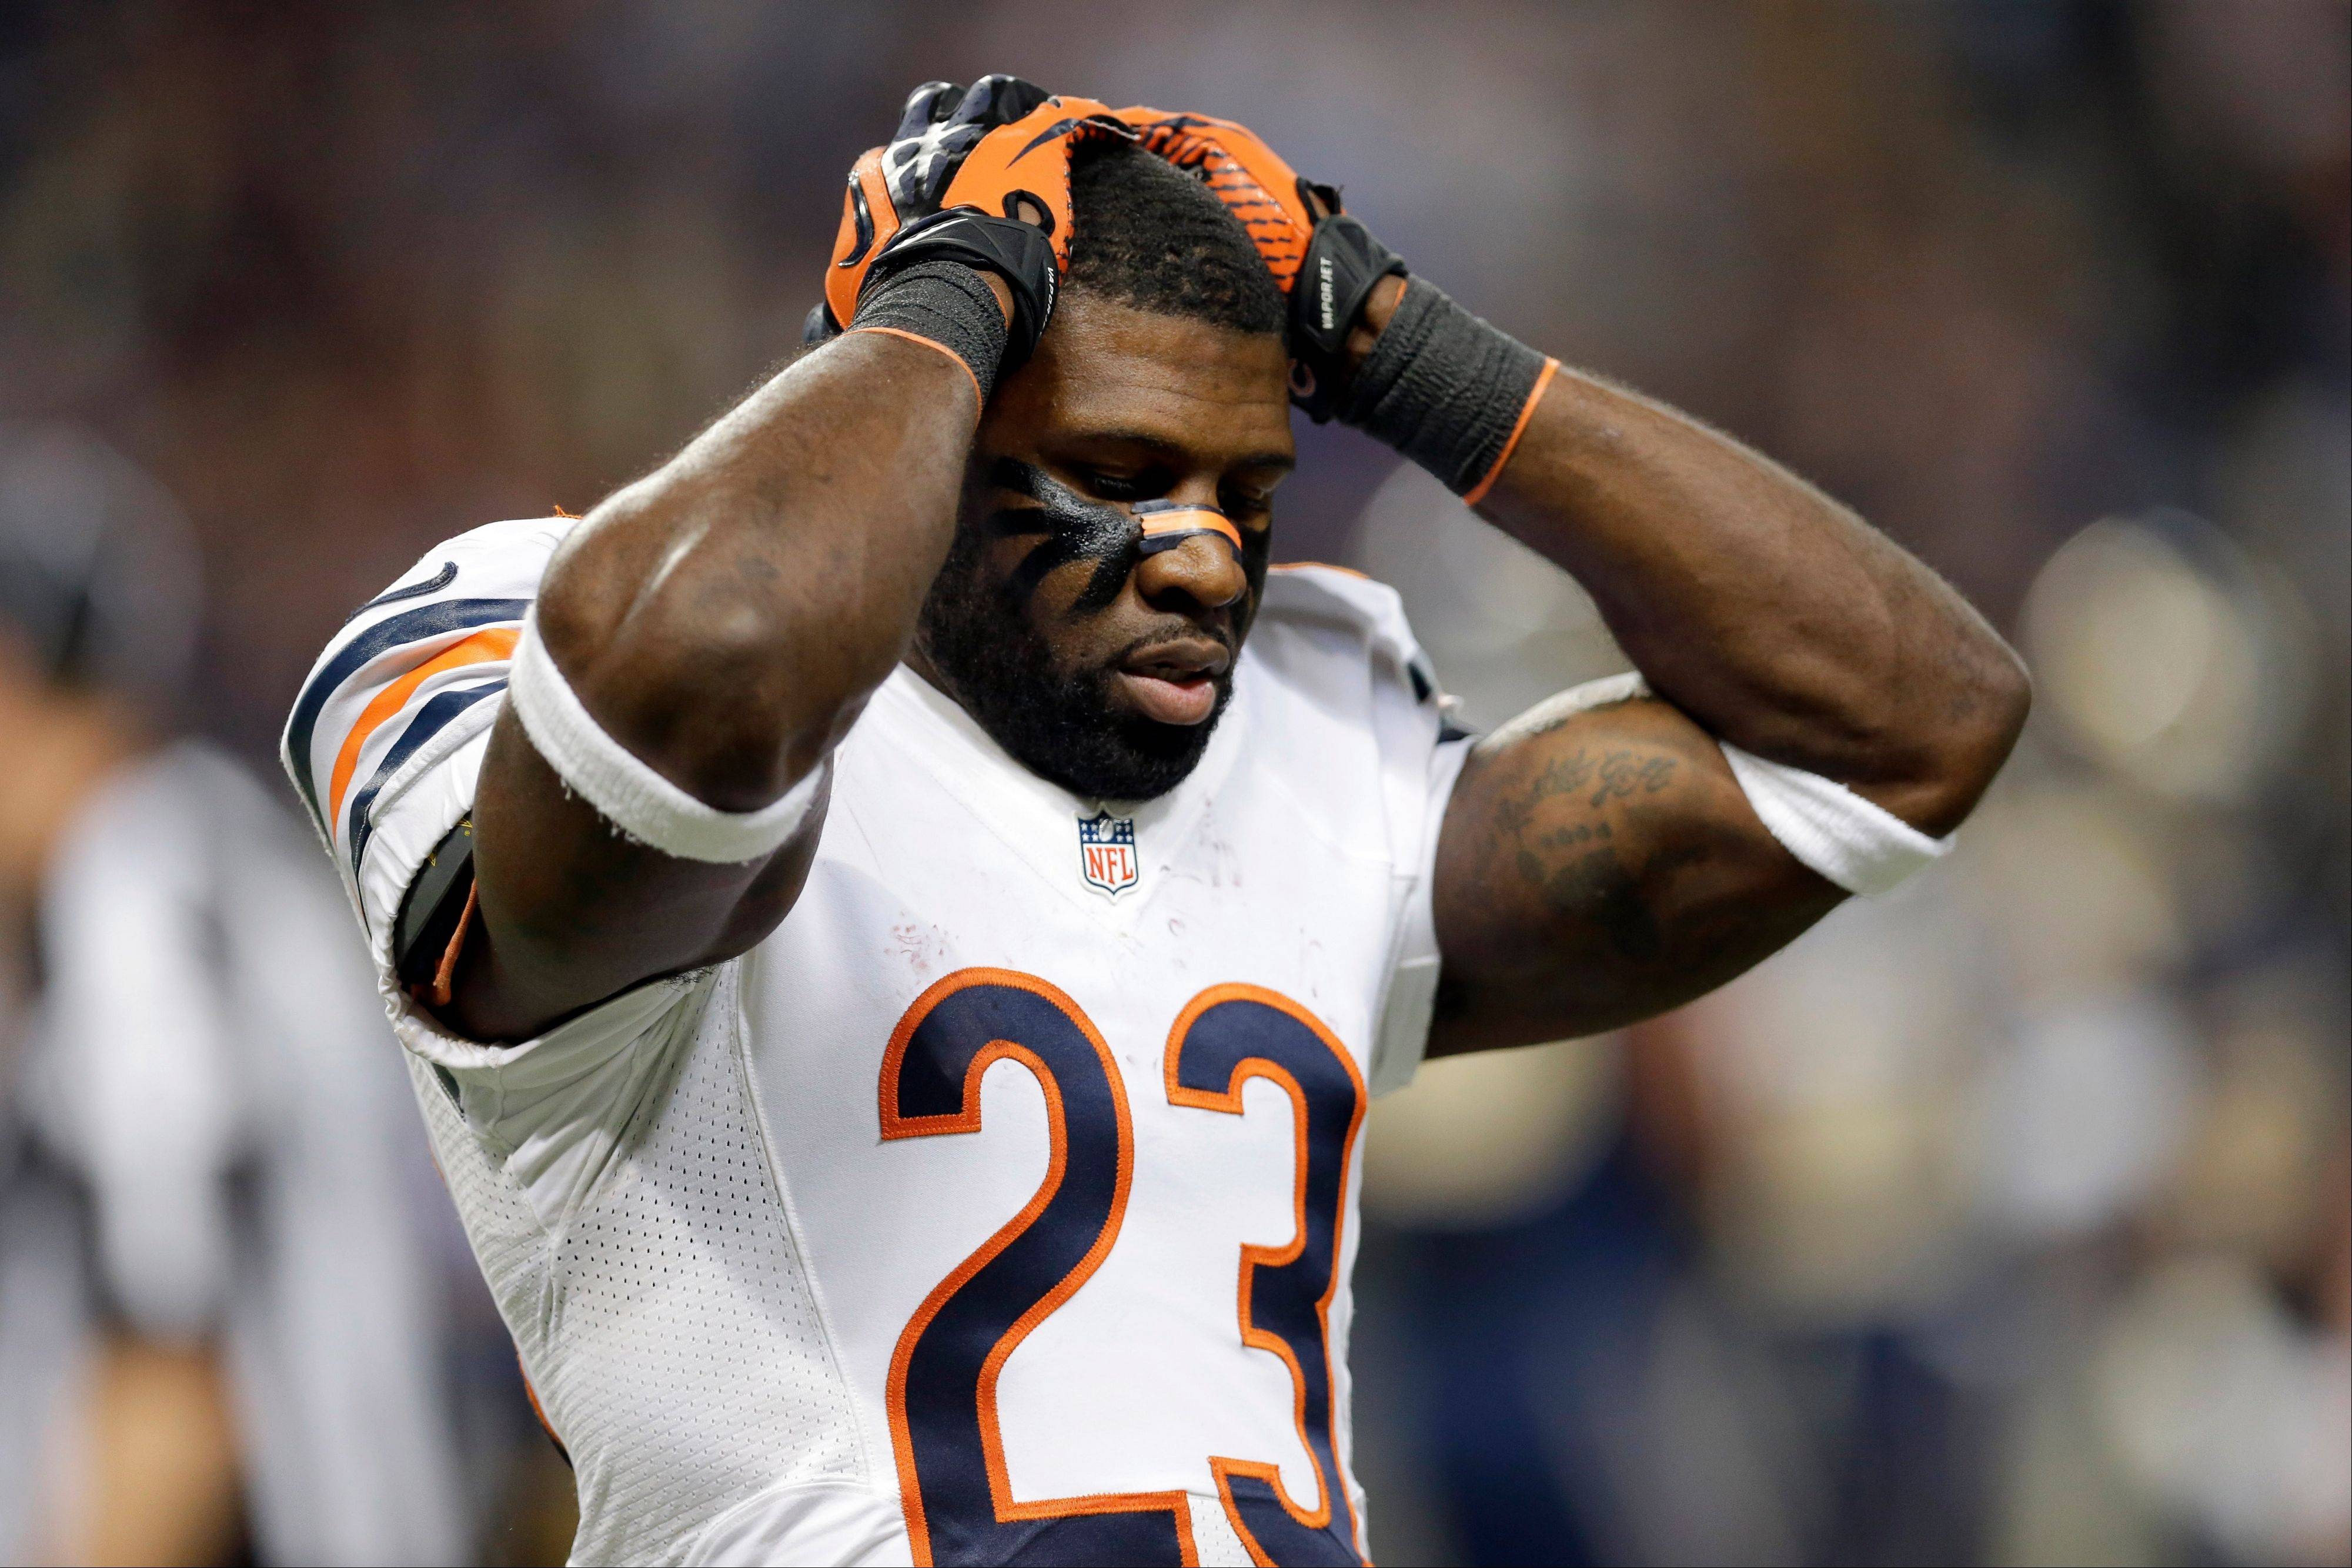 Bears drop sloppy game in St. Louis